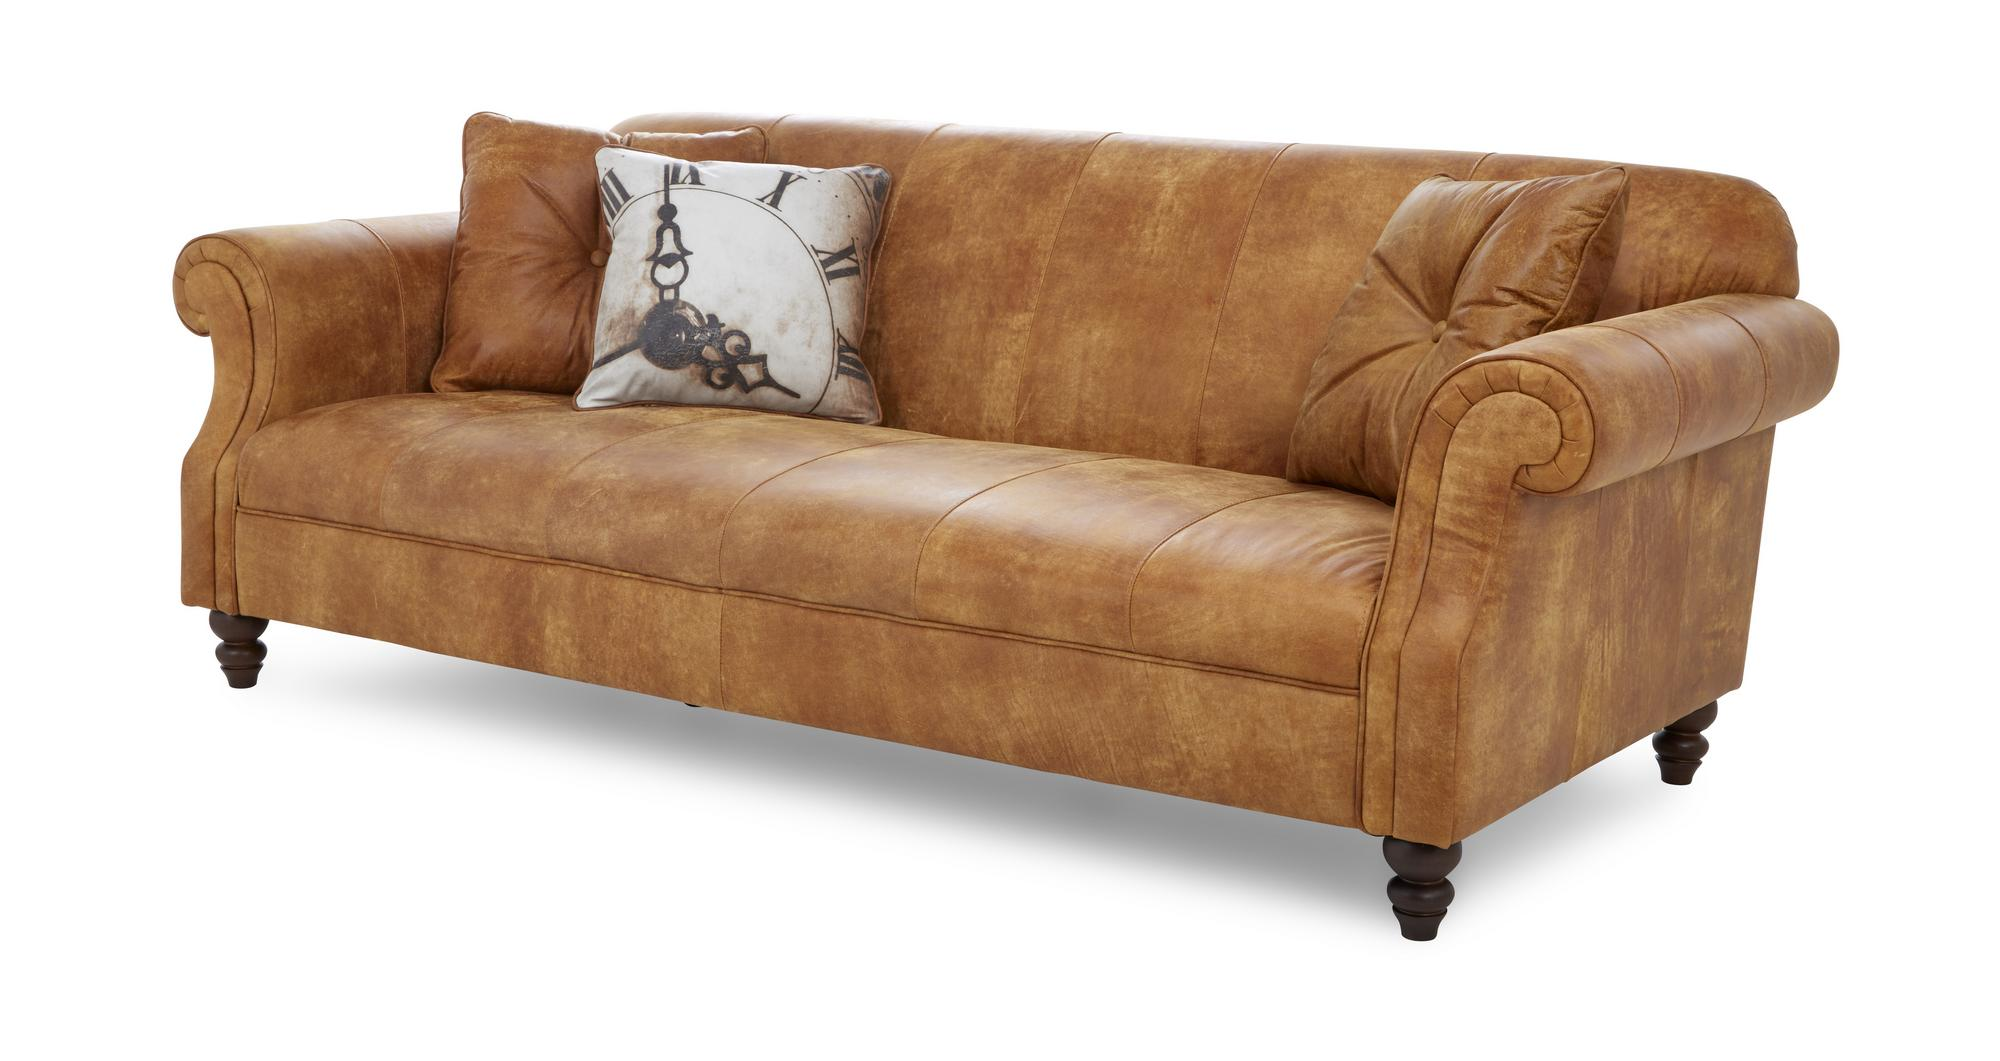 Dfs Balmoral Ranch Natural Leather 3 Seater Sofa 182208